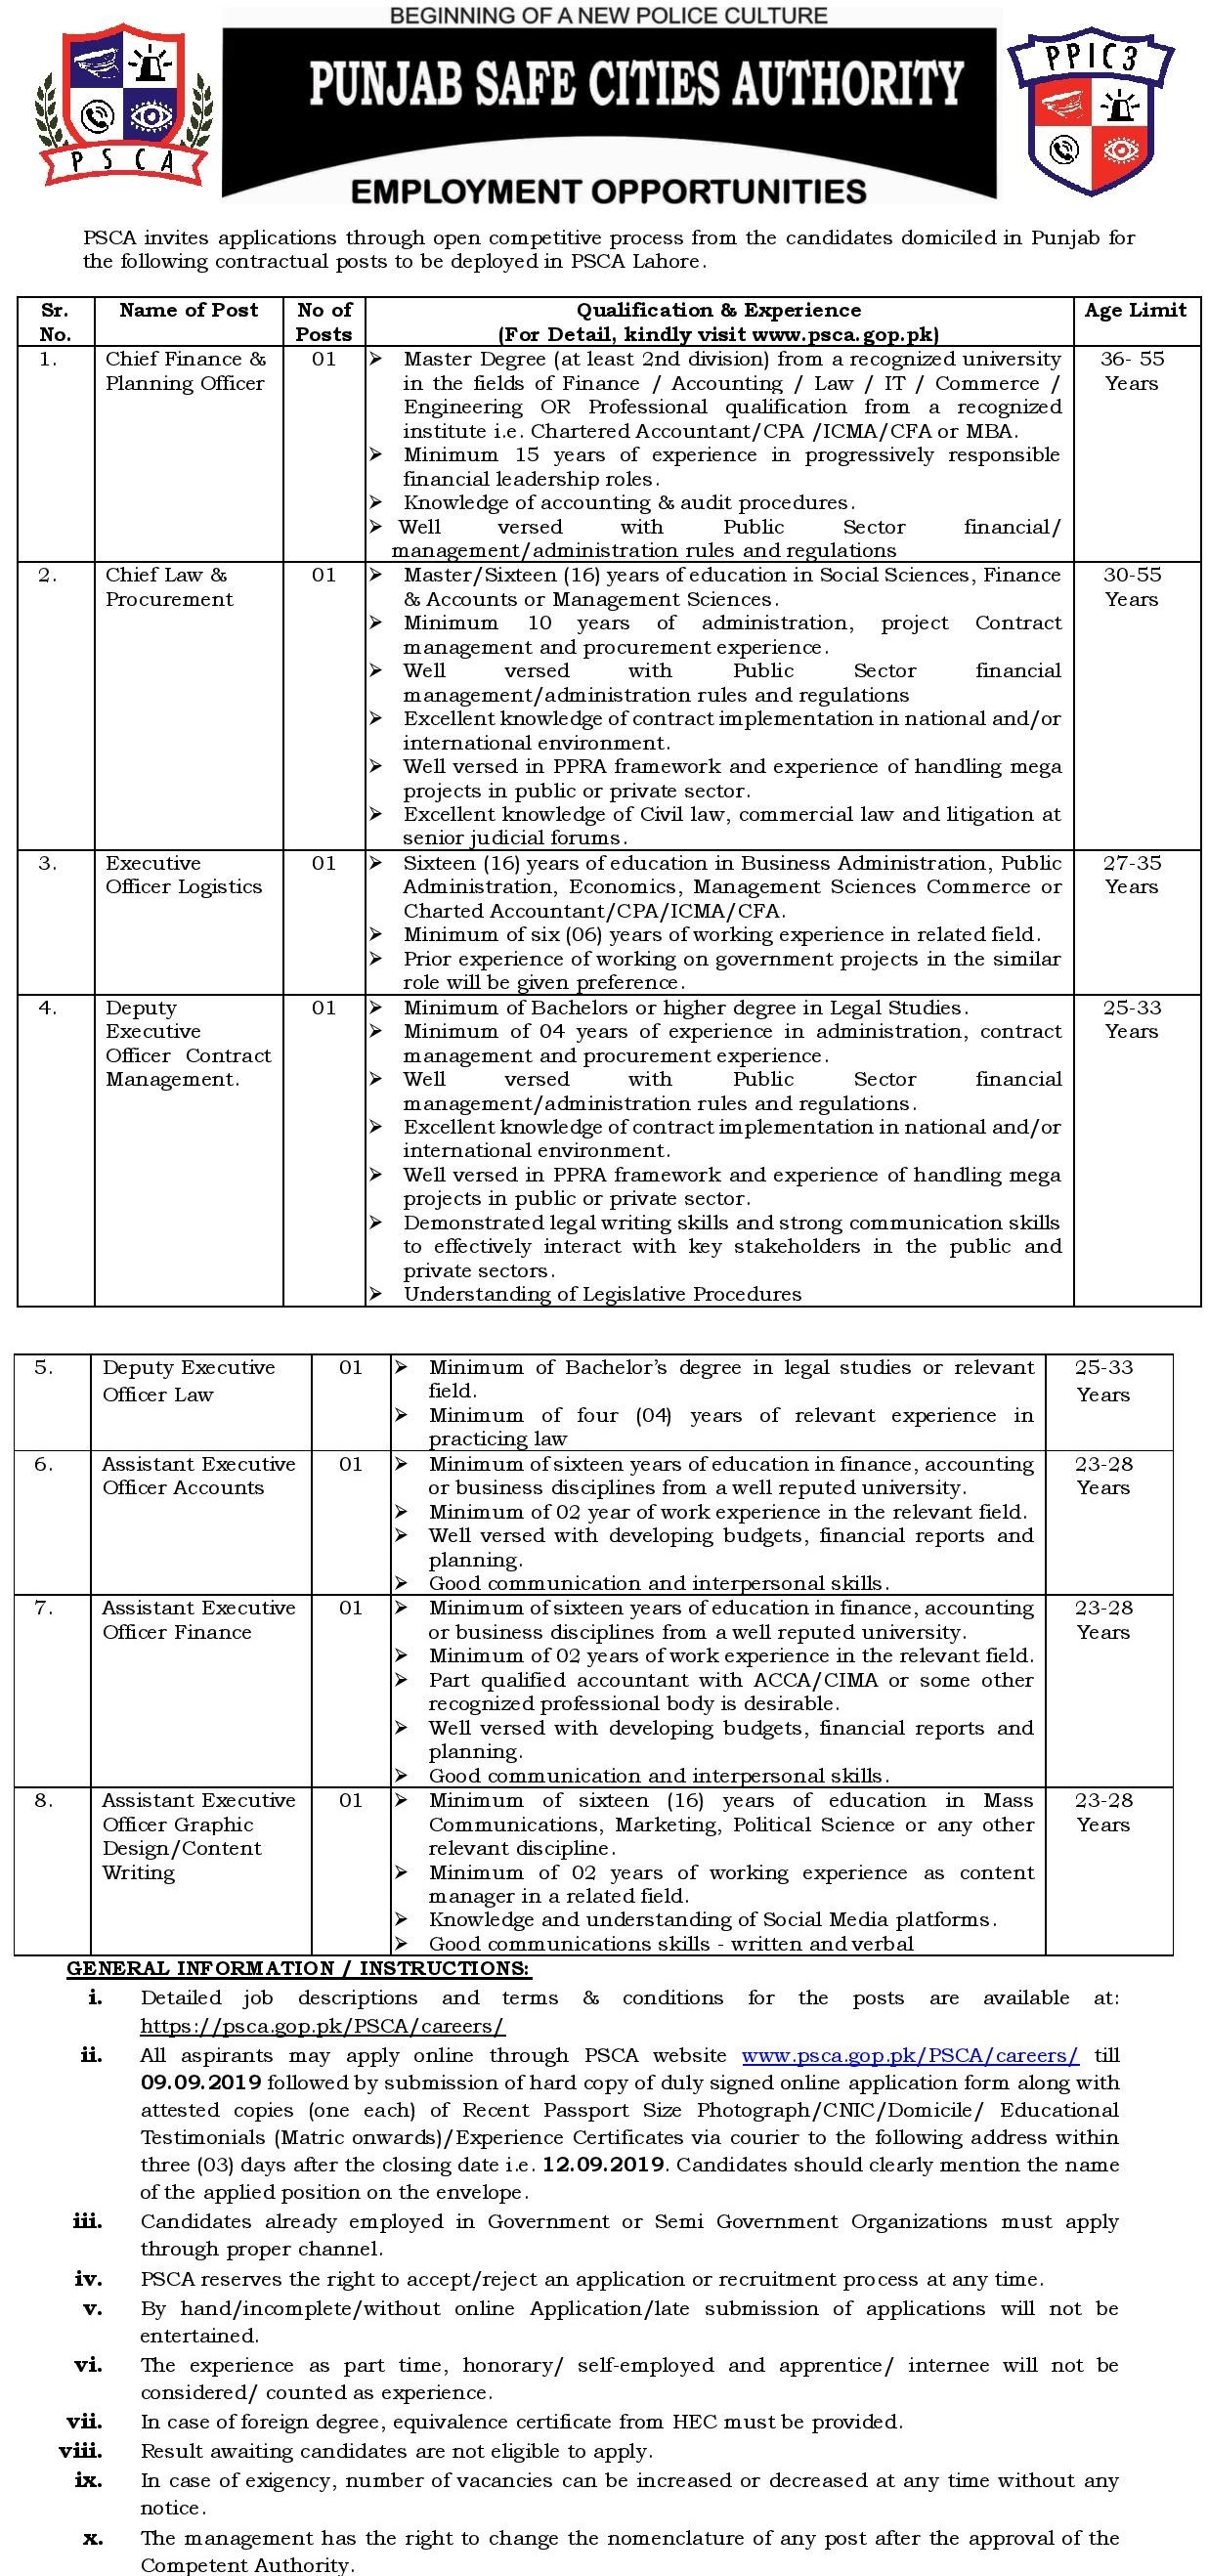 PSCA Punjab Safe Cities Authority Jobs 2019 Apply online